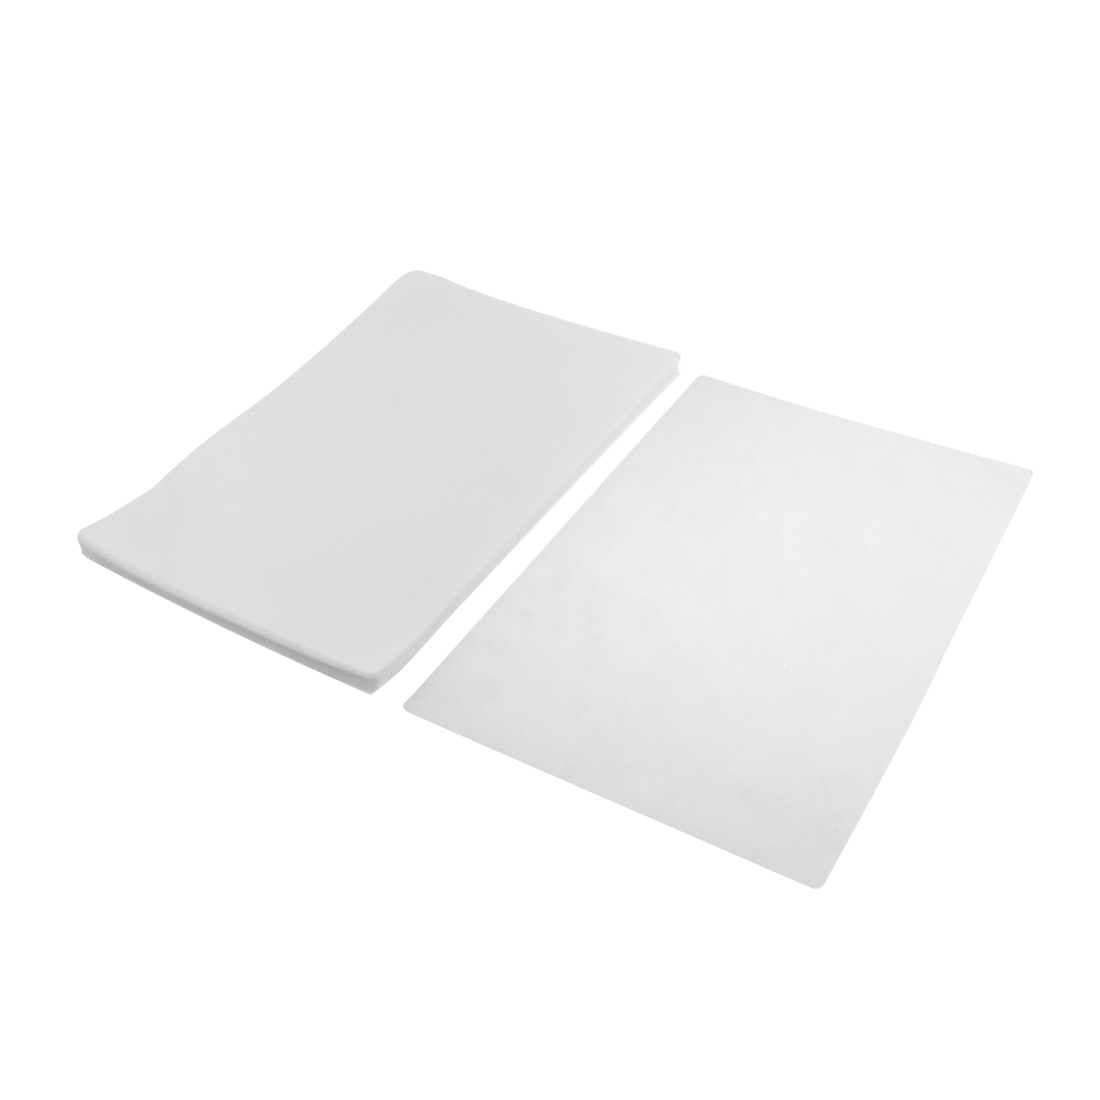 200 Pcs Clear Plastic Photo A4 Paper Cards Laminating Pouch Film 307mmx220mm